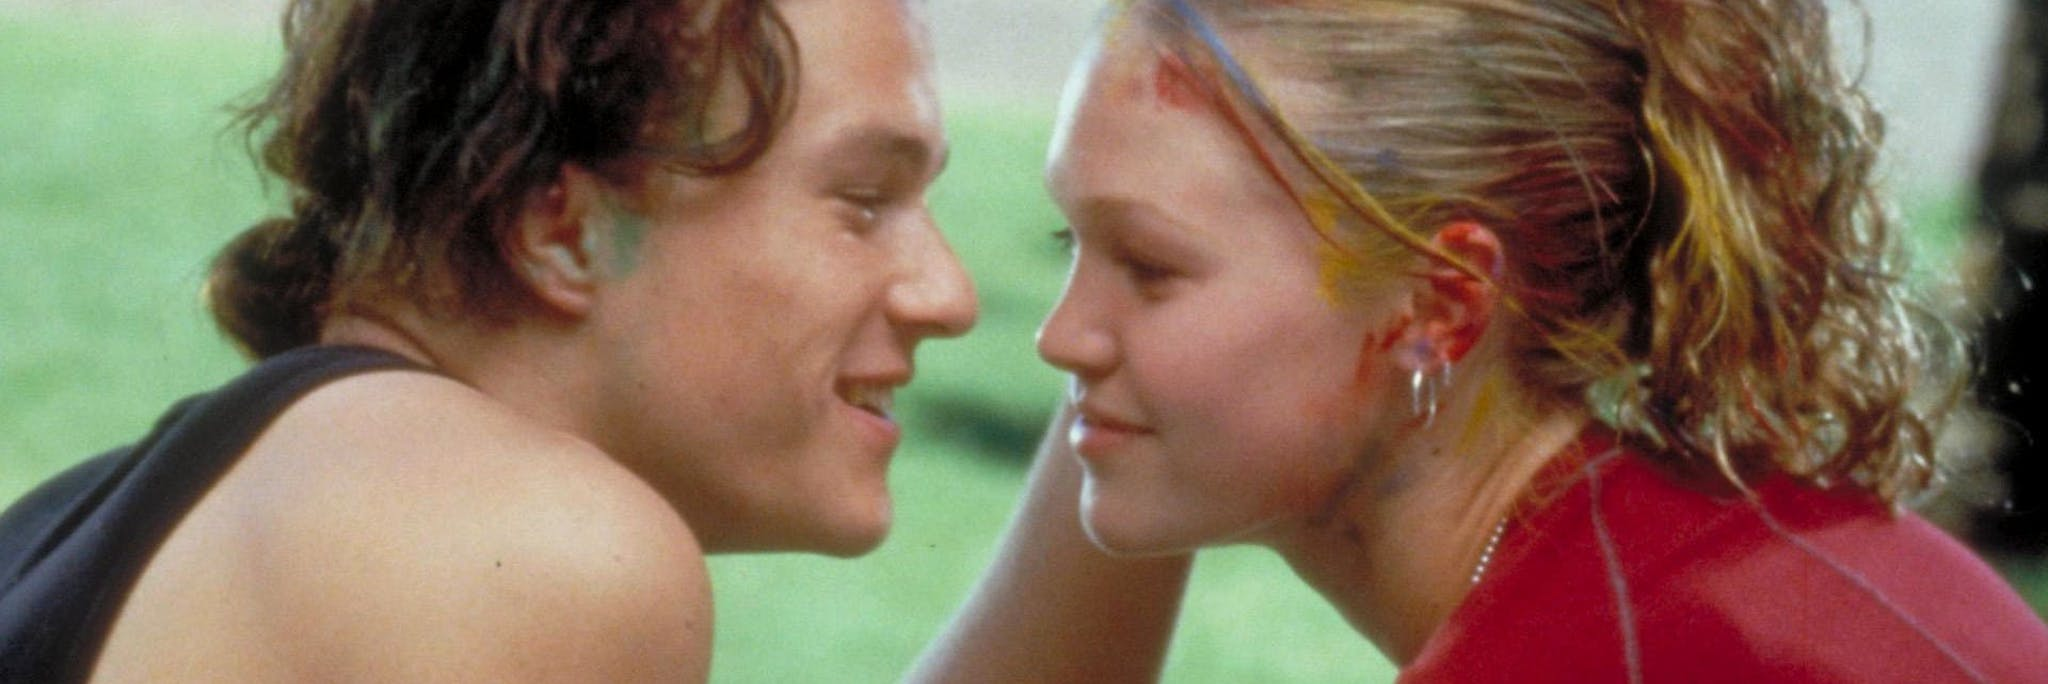 10 Things I Hate About You Soundtrack: 10 Things I Hate About You Music Soundtrack